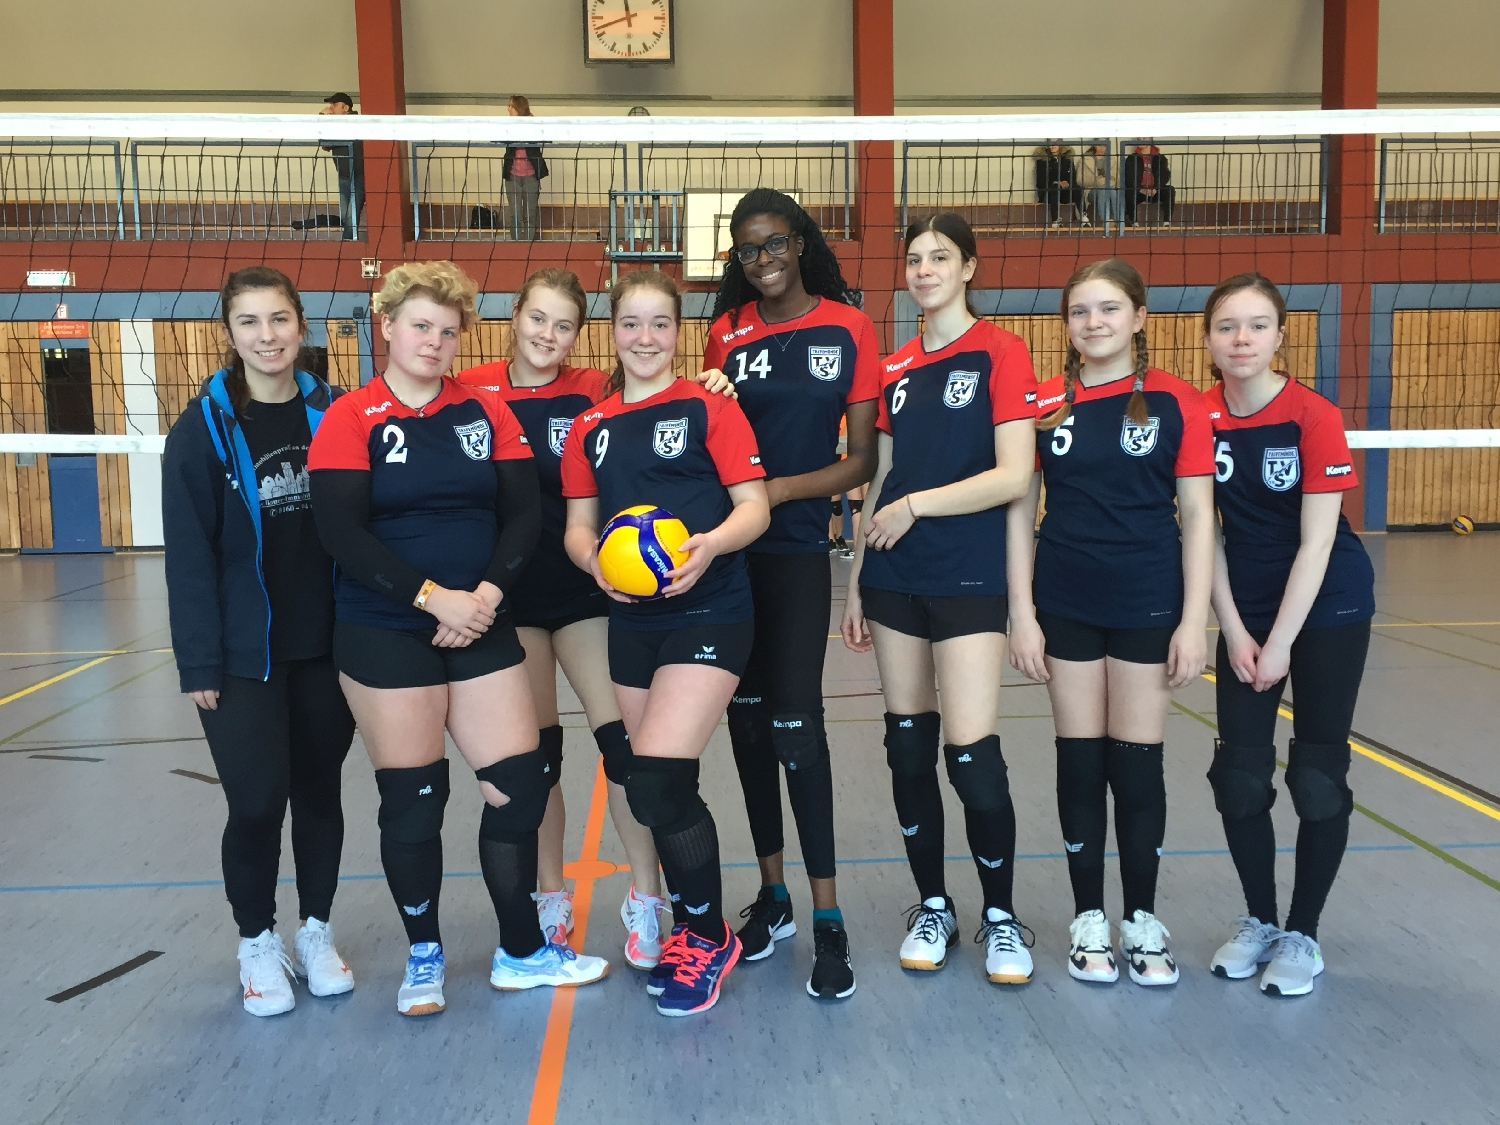 20200119 U18 Volleyballerinnen Bild1